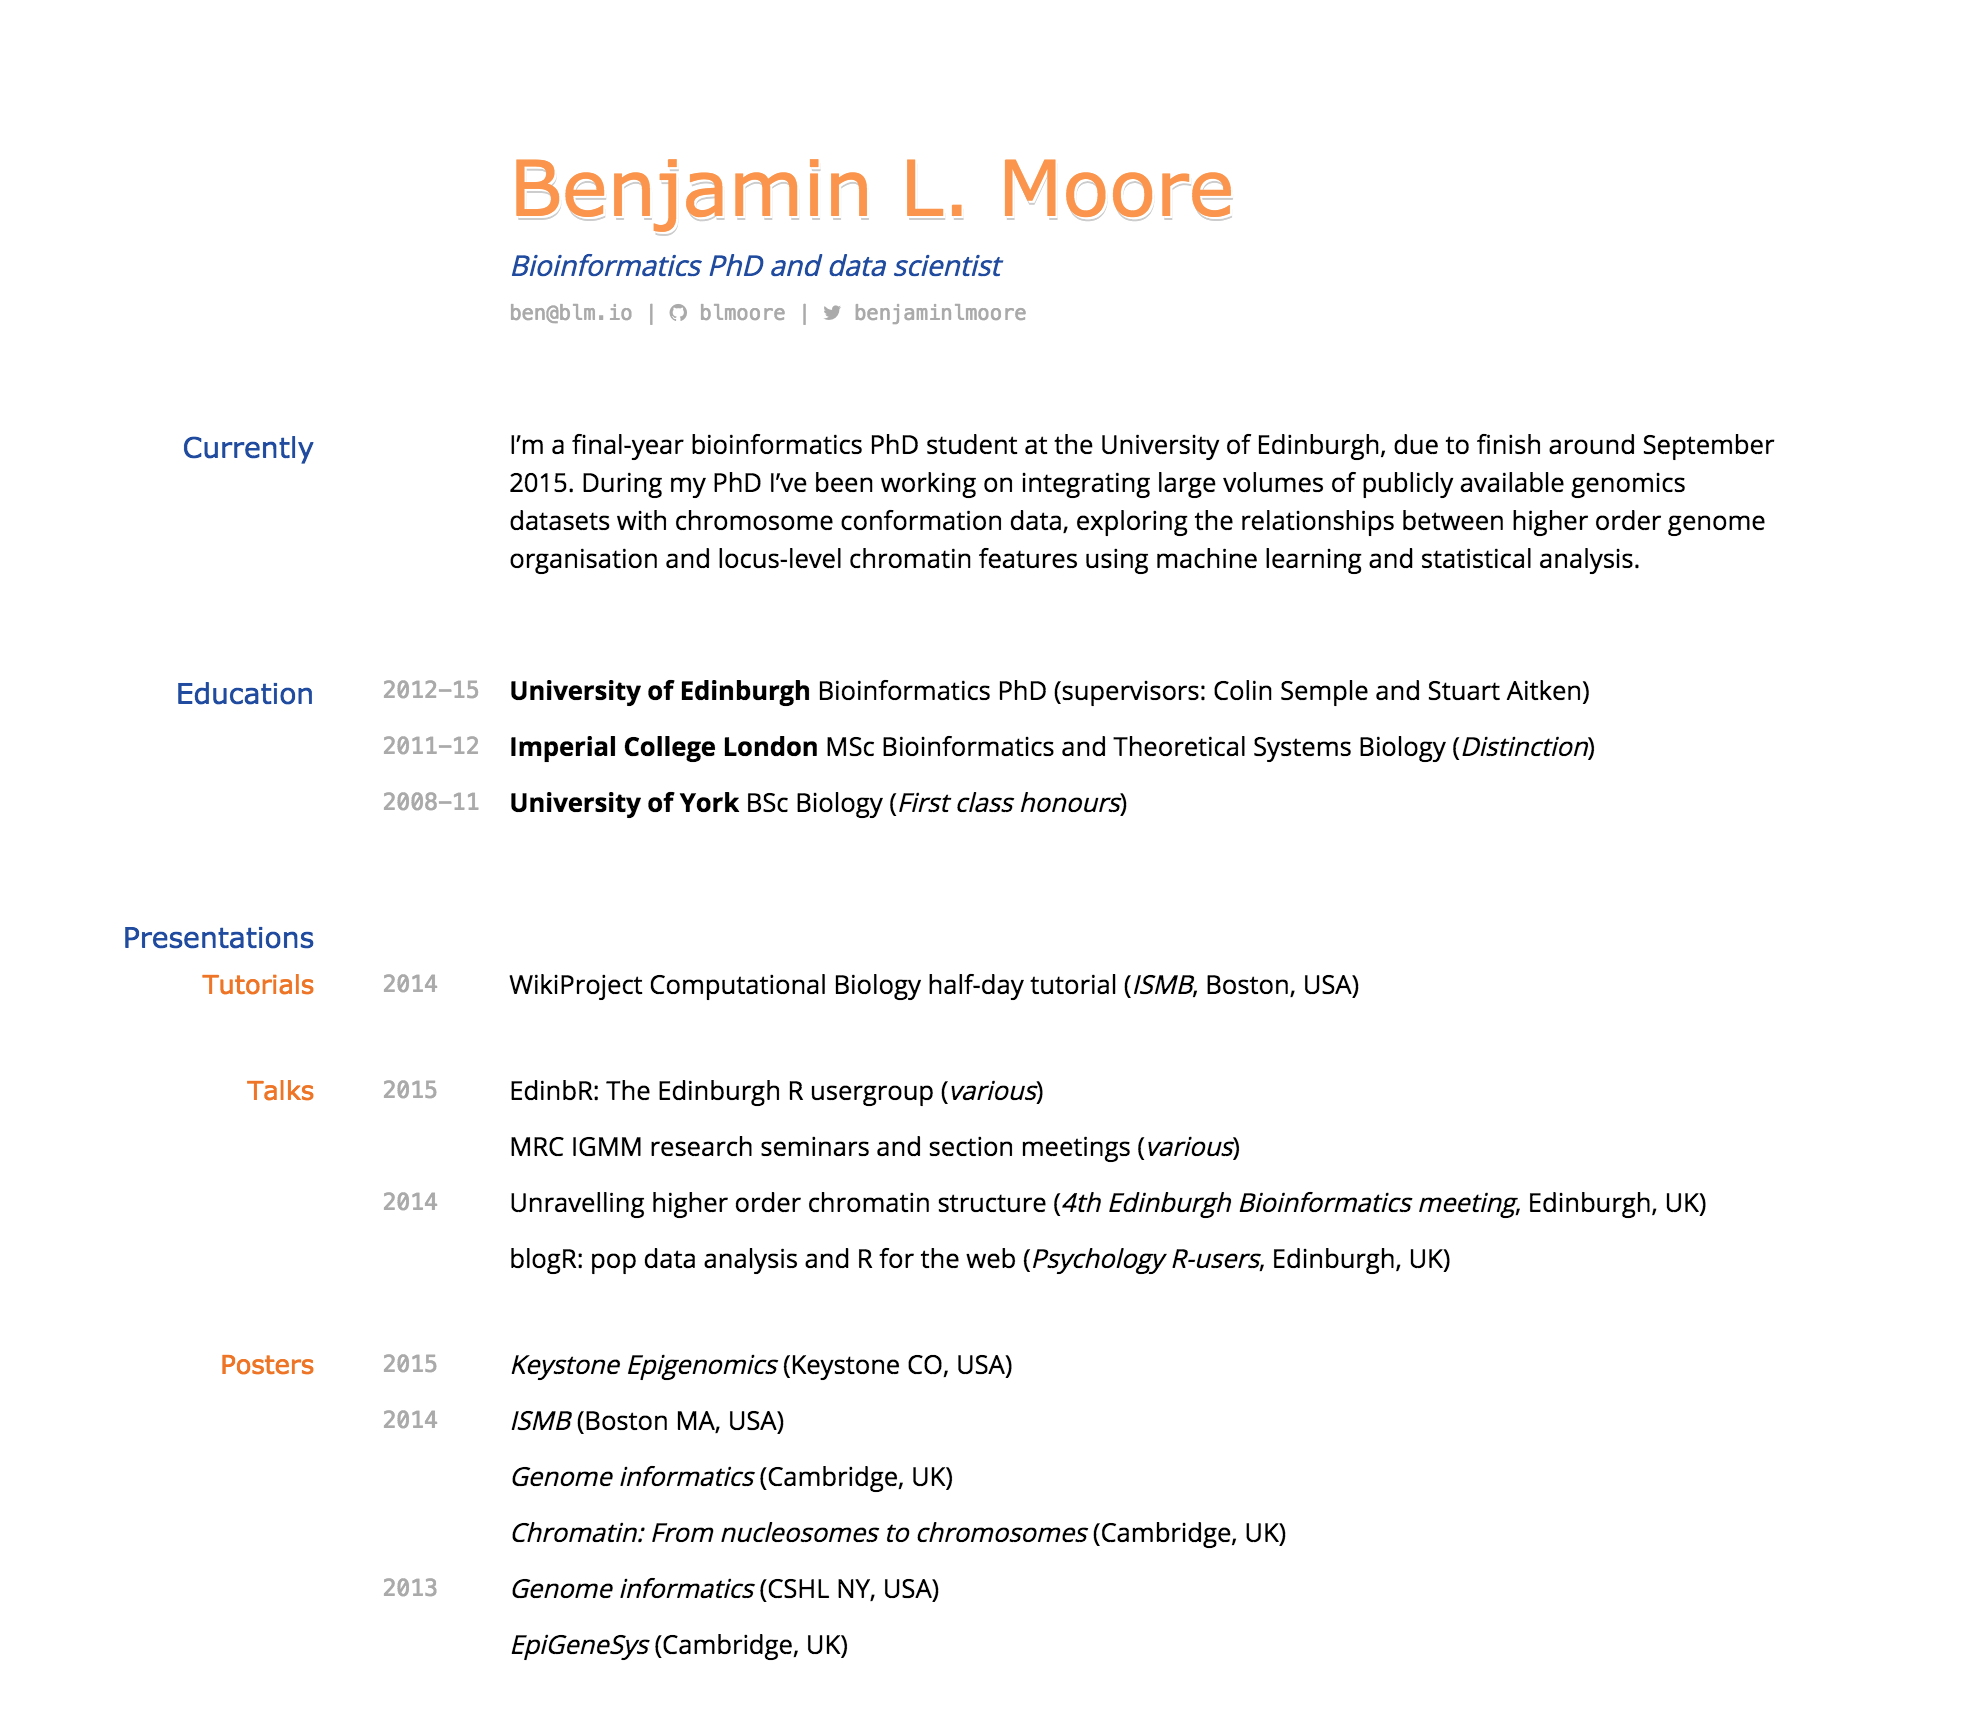 resume in markdown